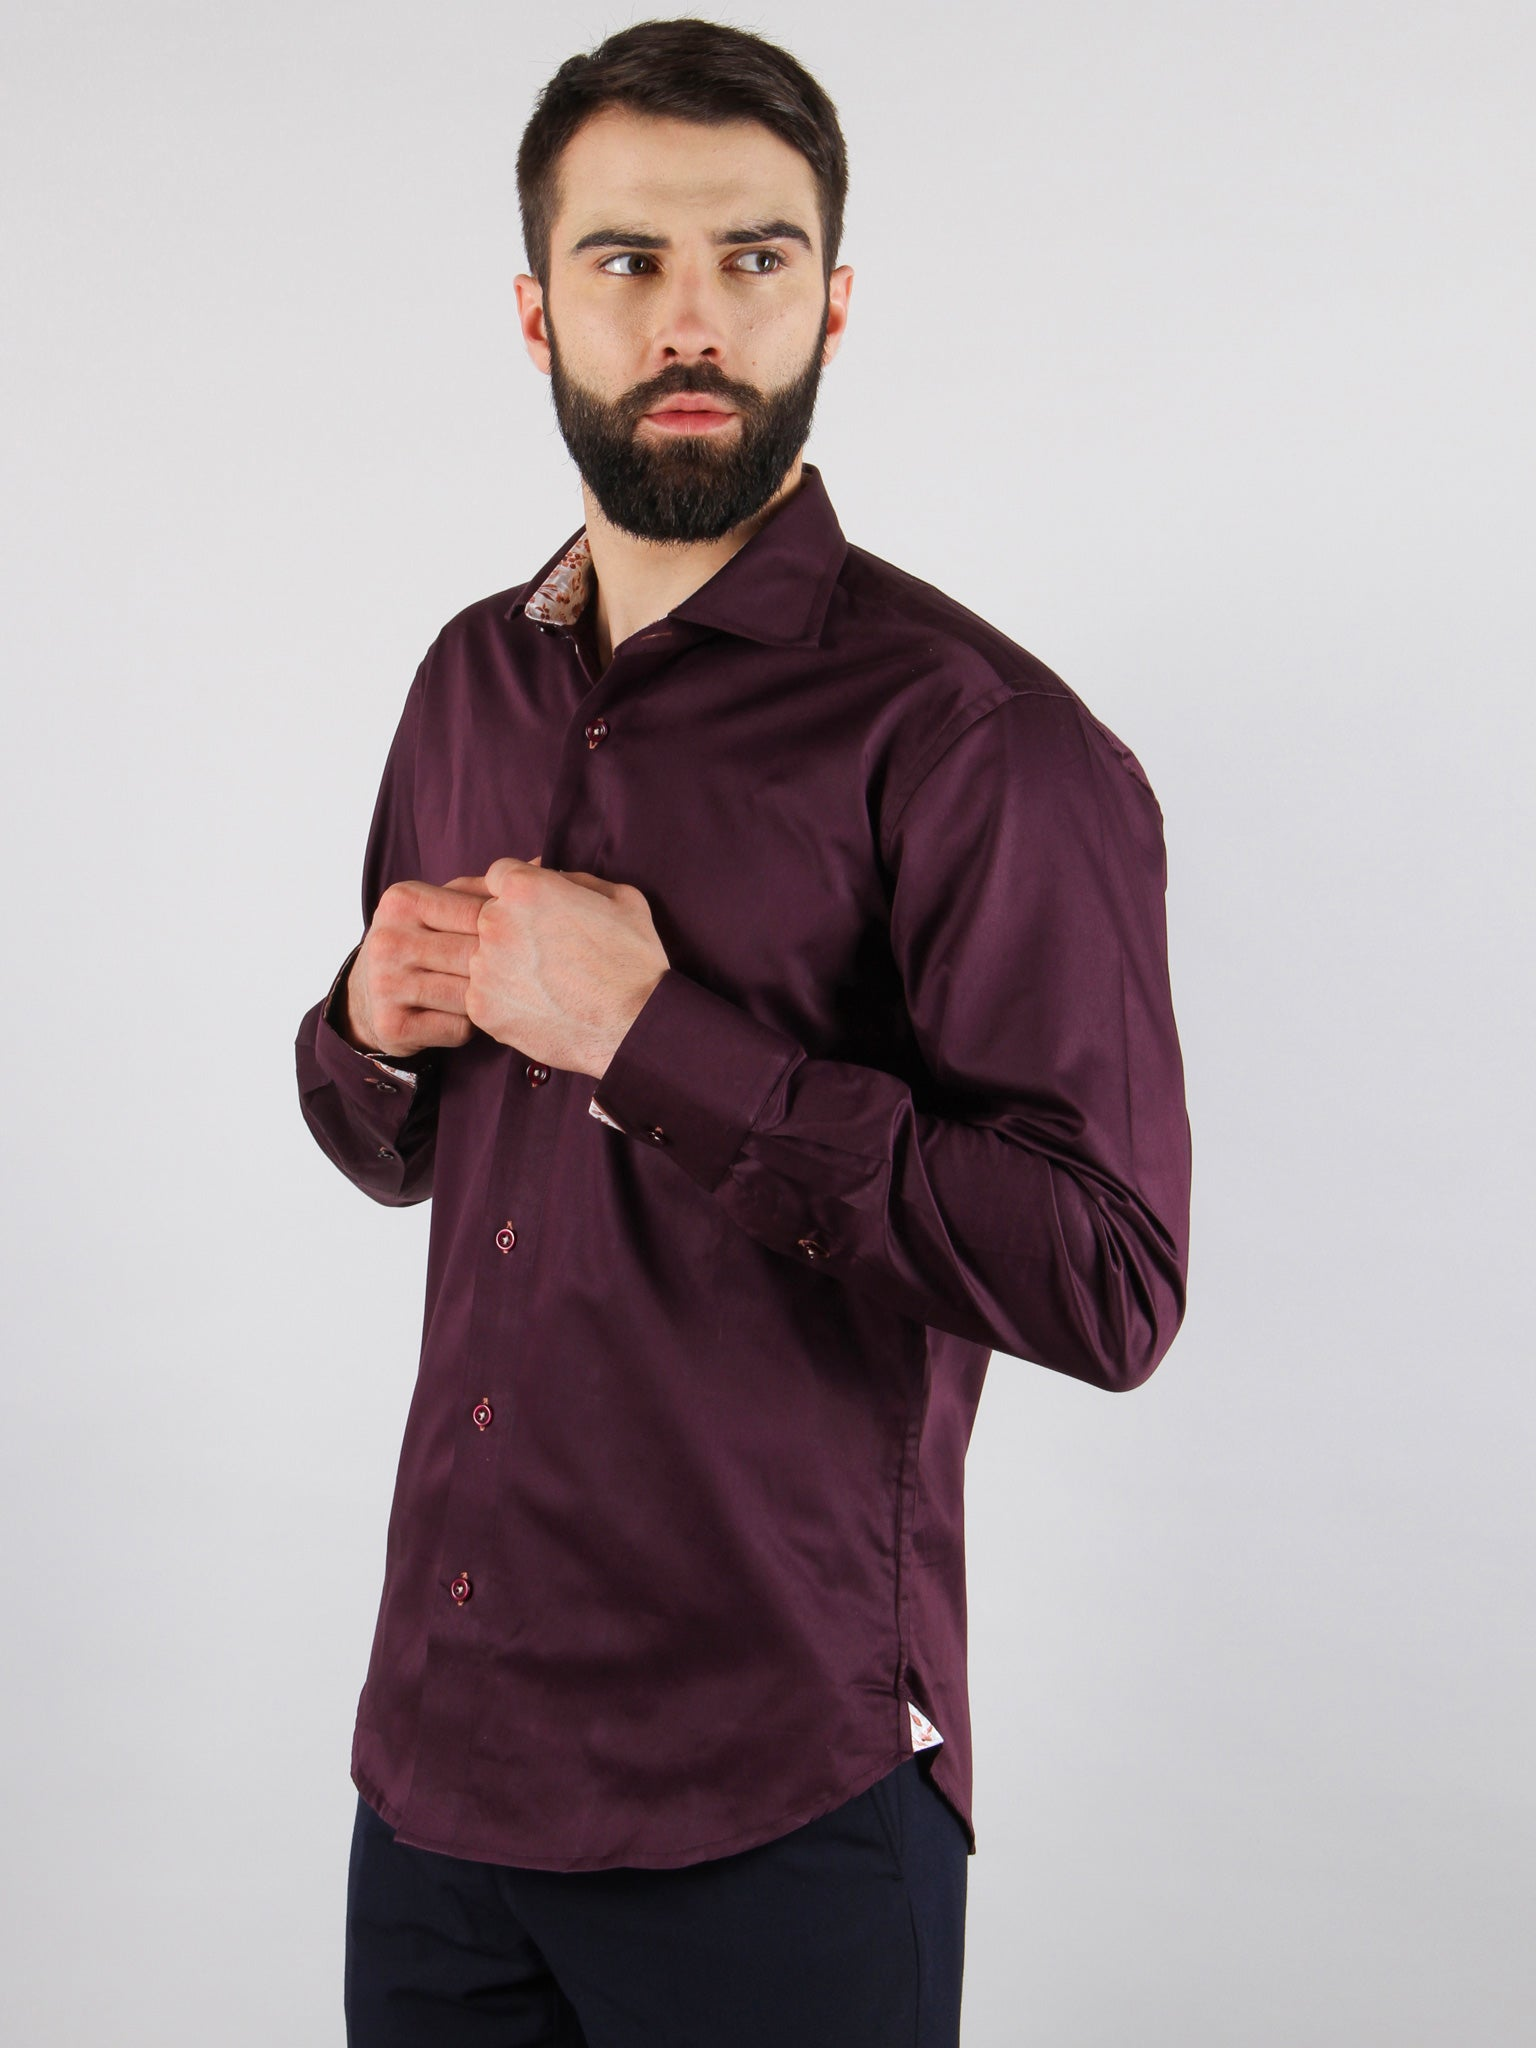 grape vine shirt model image